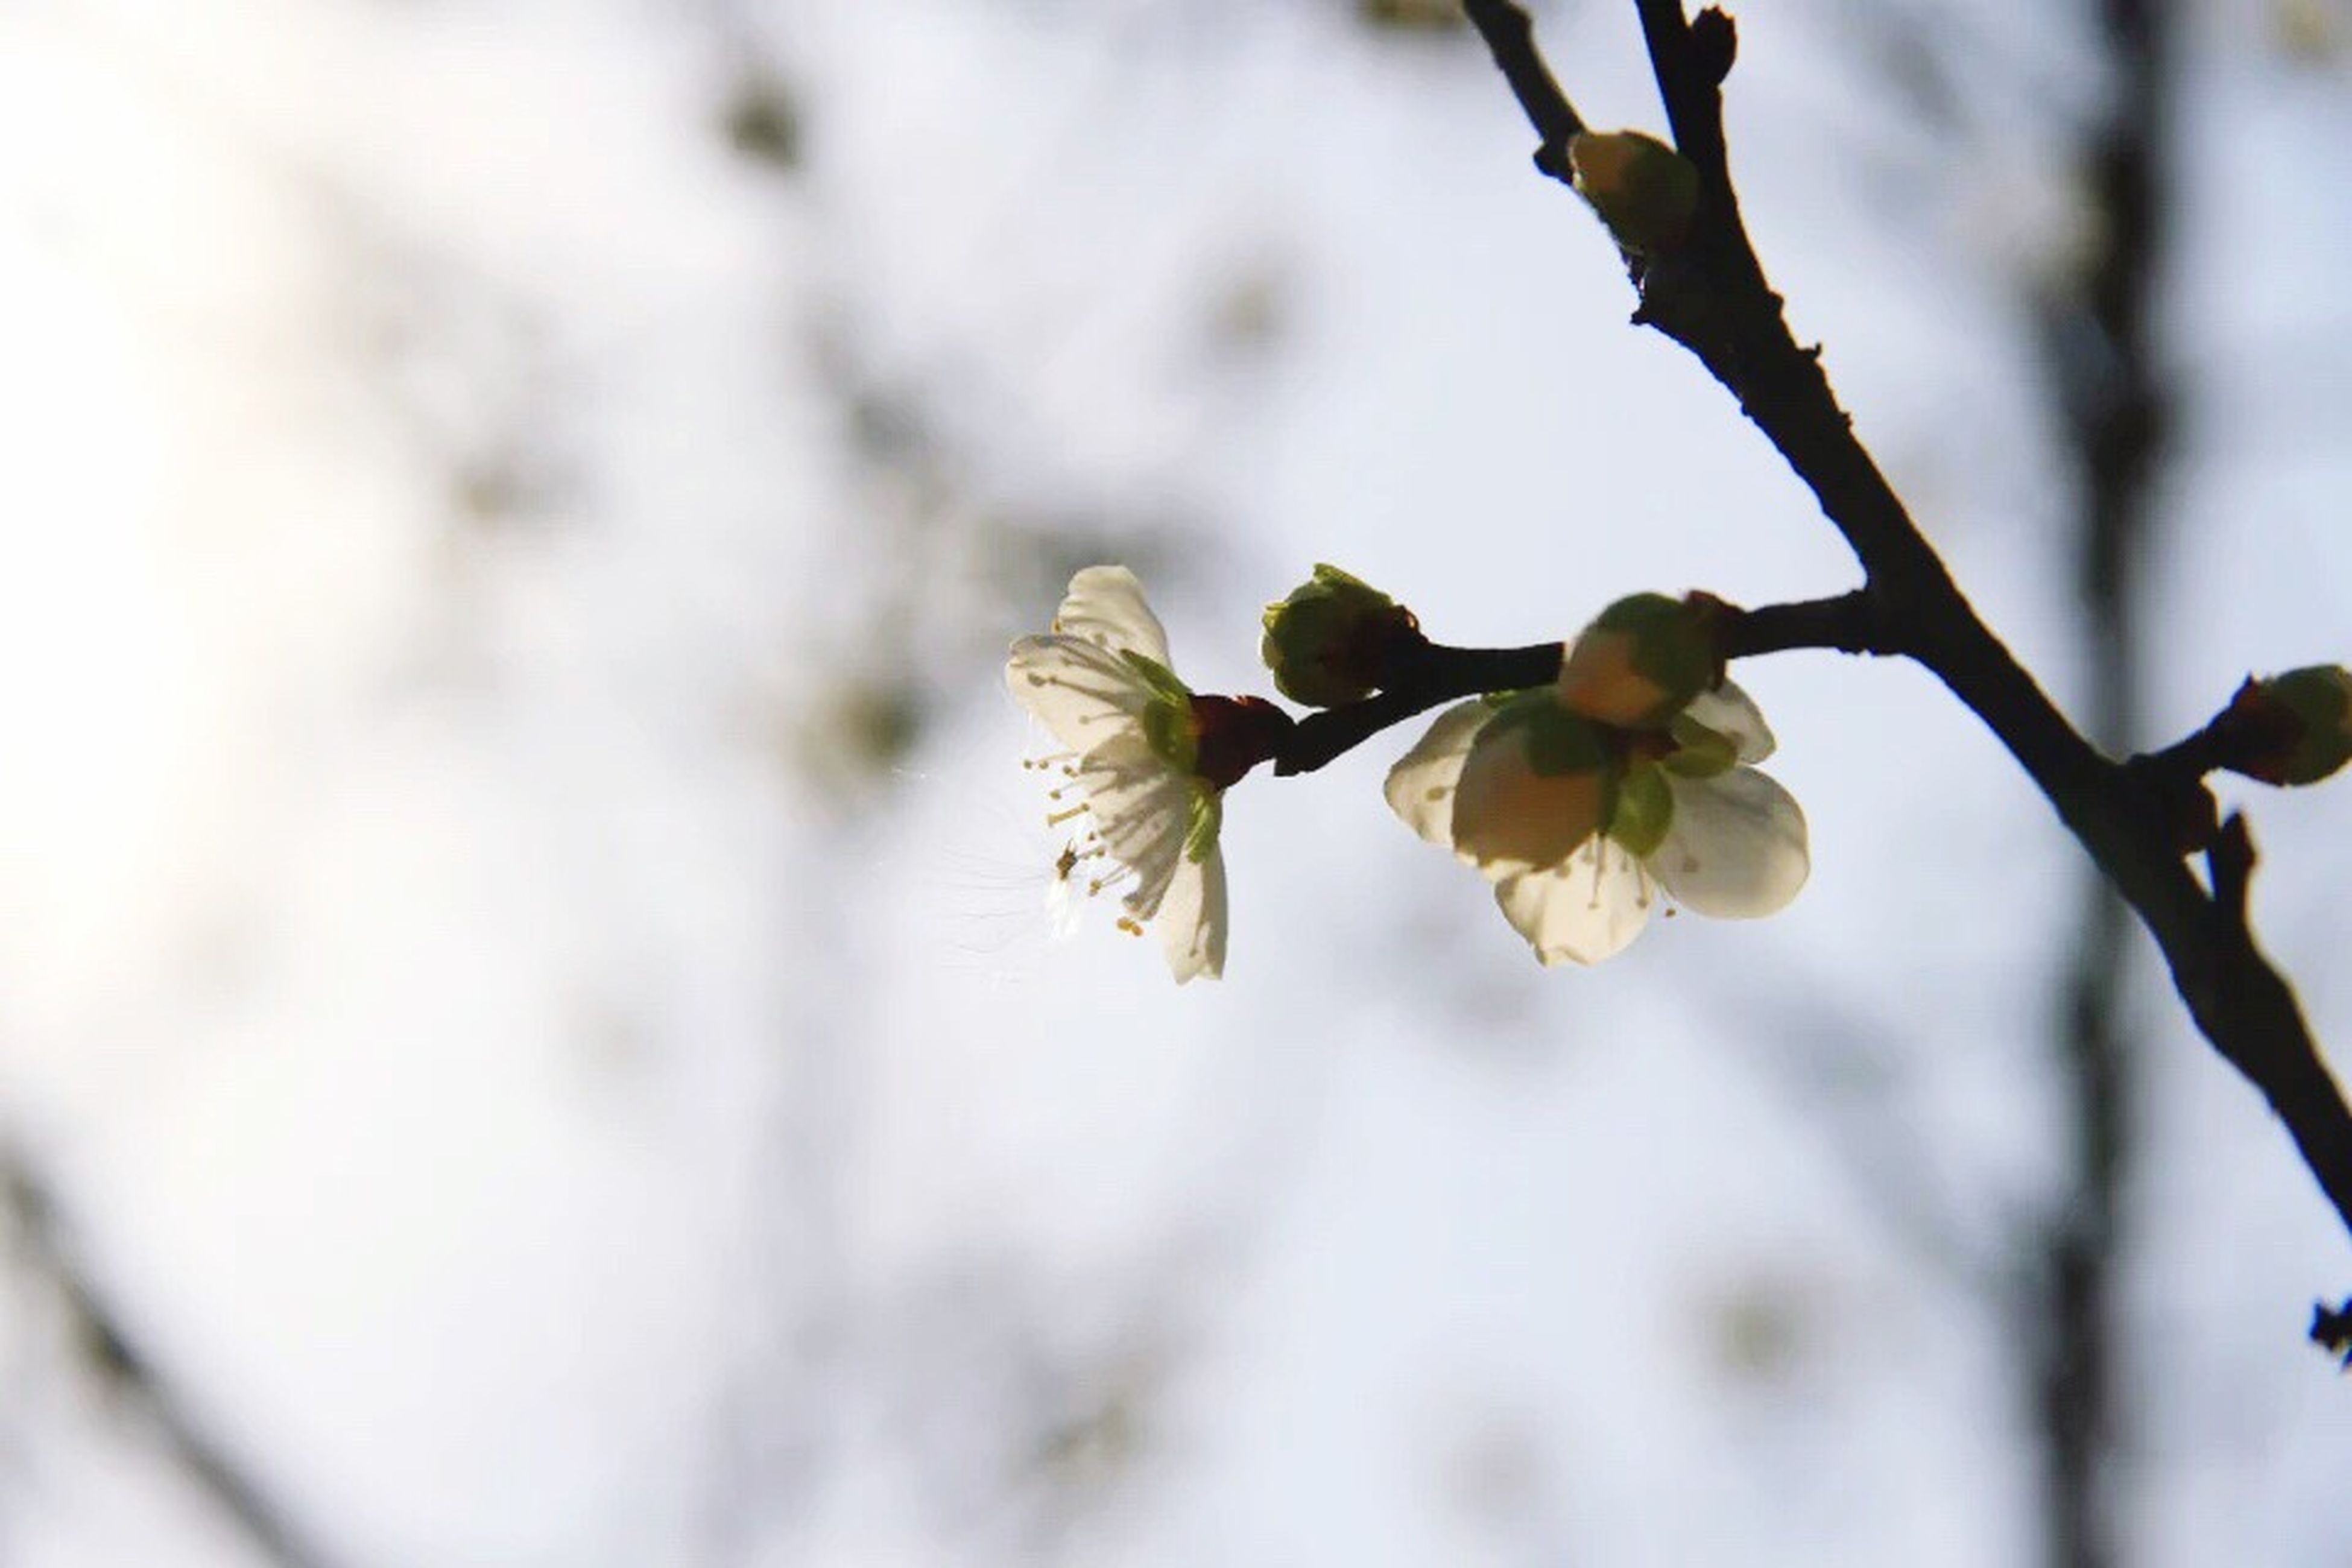 flower, branch, freshness, growth, fragility, petal, tree, beauty in nature, nature, blossom, focus on foreground, close-up, twig, cherry blossom, in bloom, blooming, springtime, white color, flower head, cherry tree